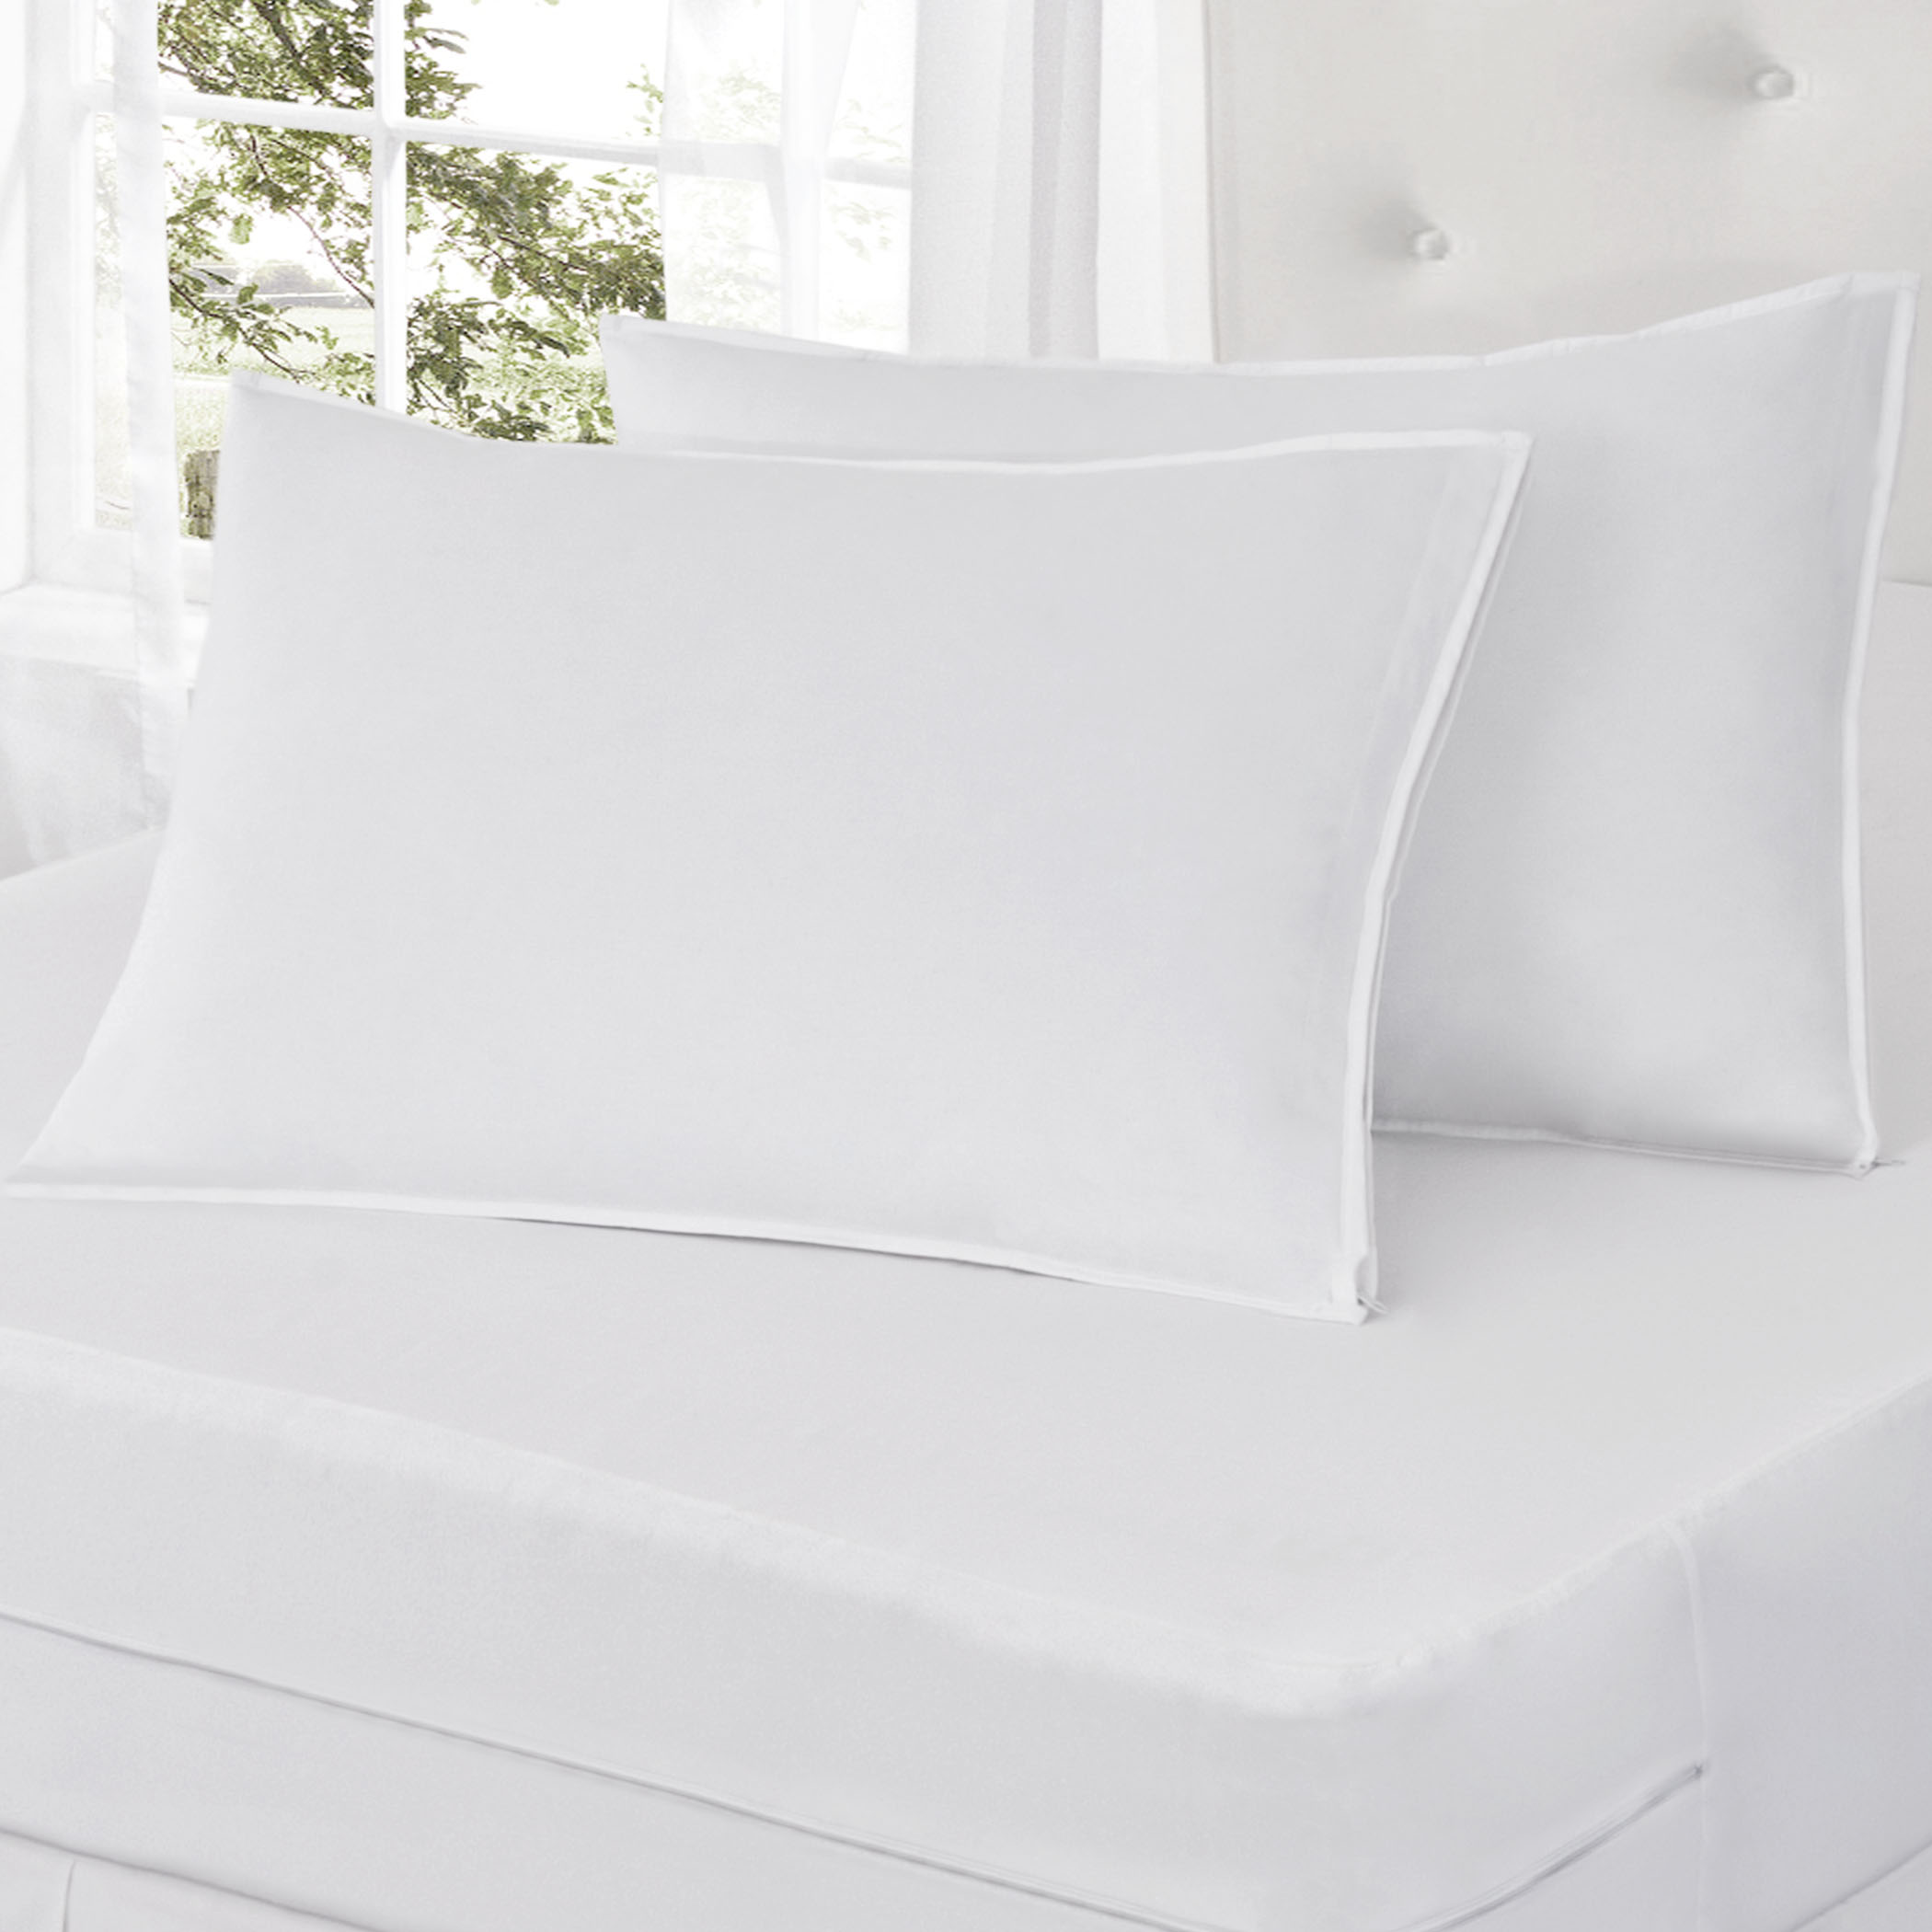 The Luxury Cotton Rich Original Bed Bug Blocker All In One